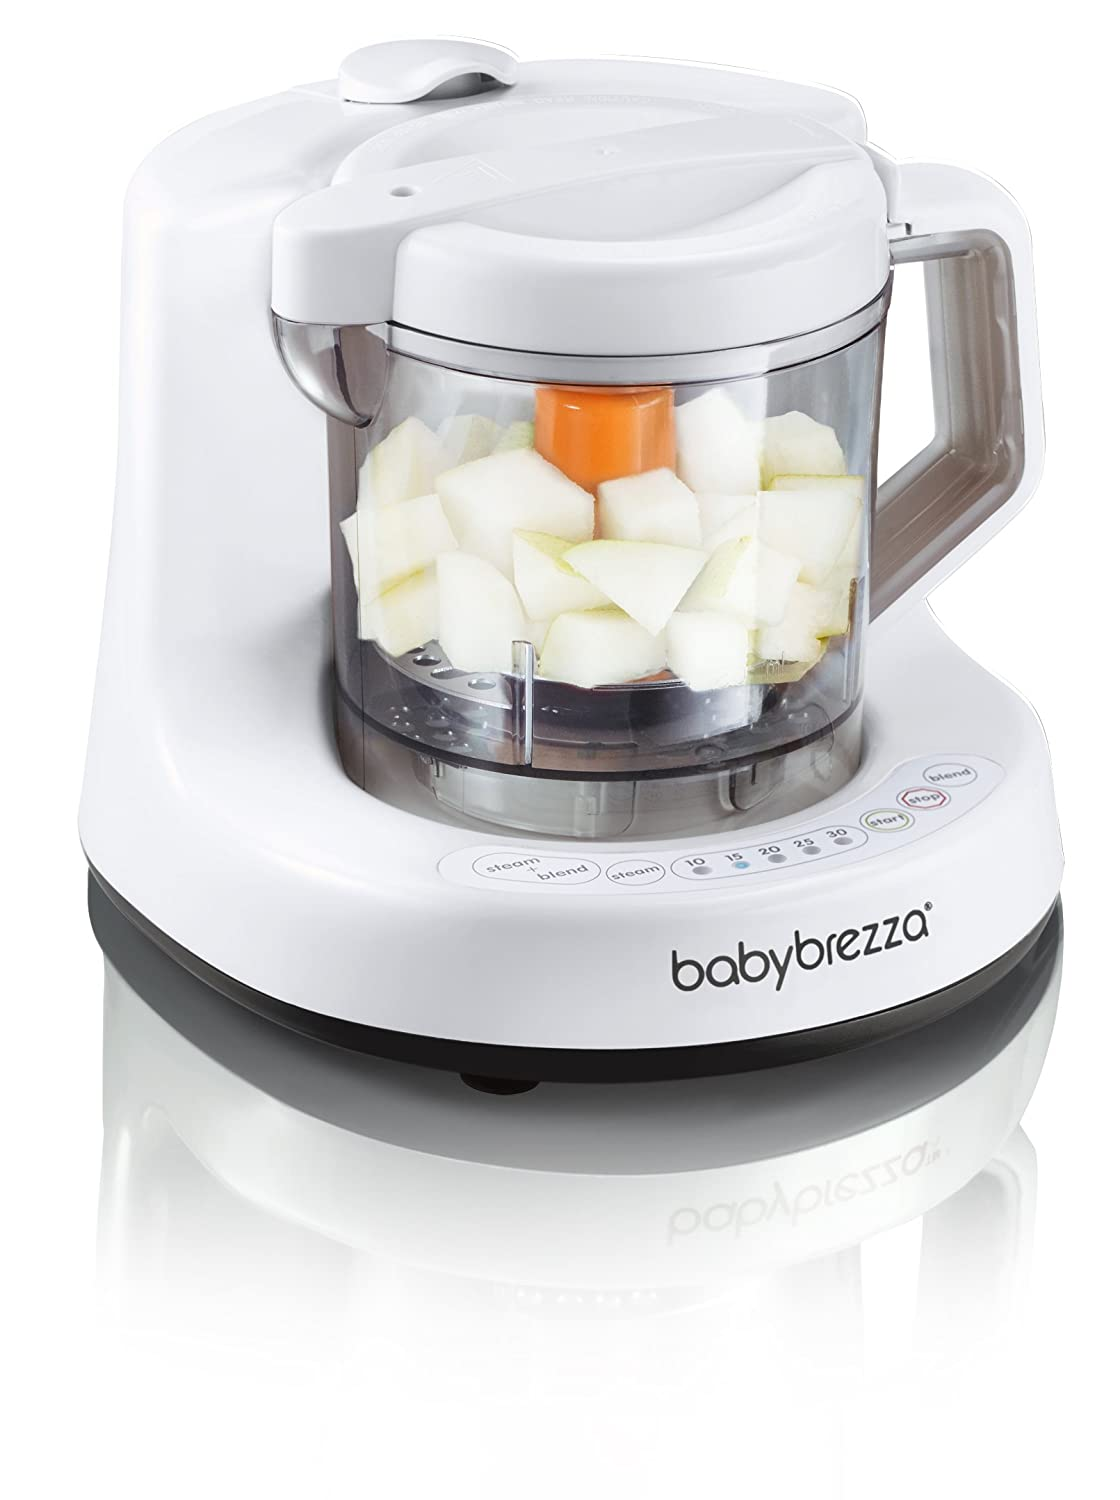 Baby Brezza Baby Food Maker Machine - One Step Cooker and Blender to Steam and Puree Baby Food For Pouches - Mixes Organic Food for Infants and Toddlers BRZ9043